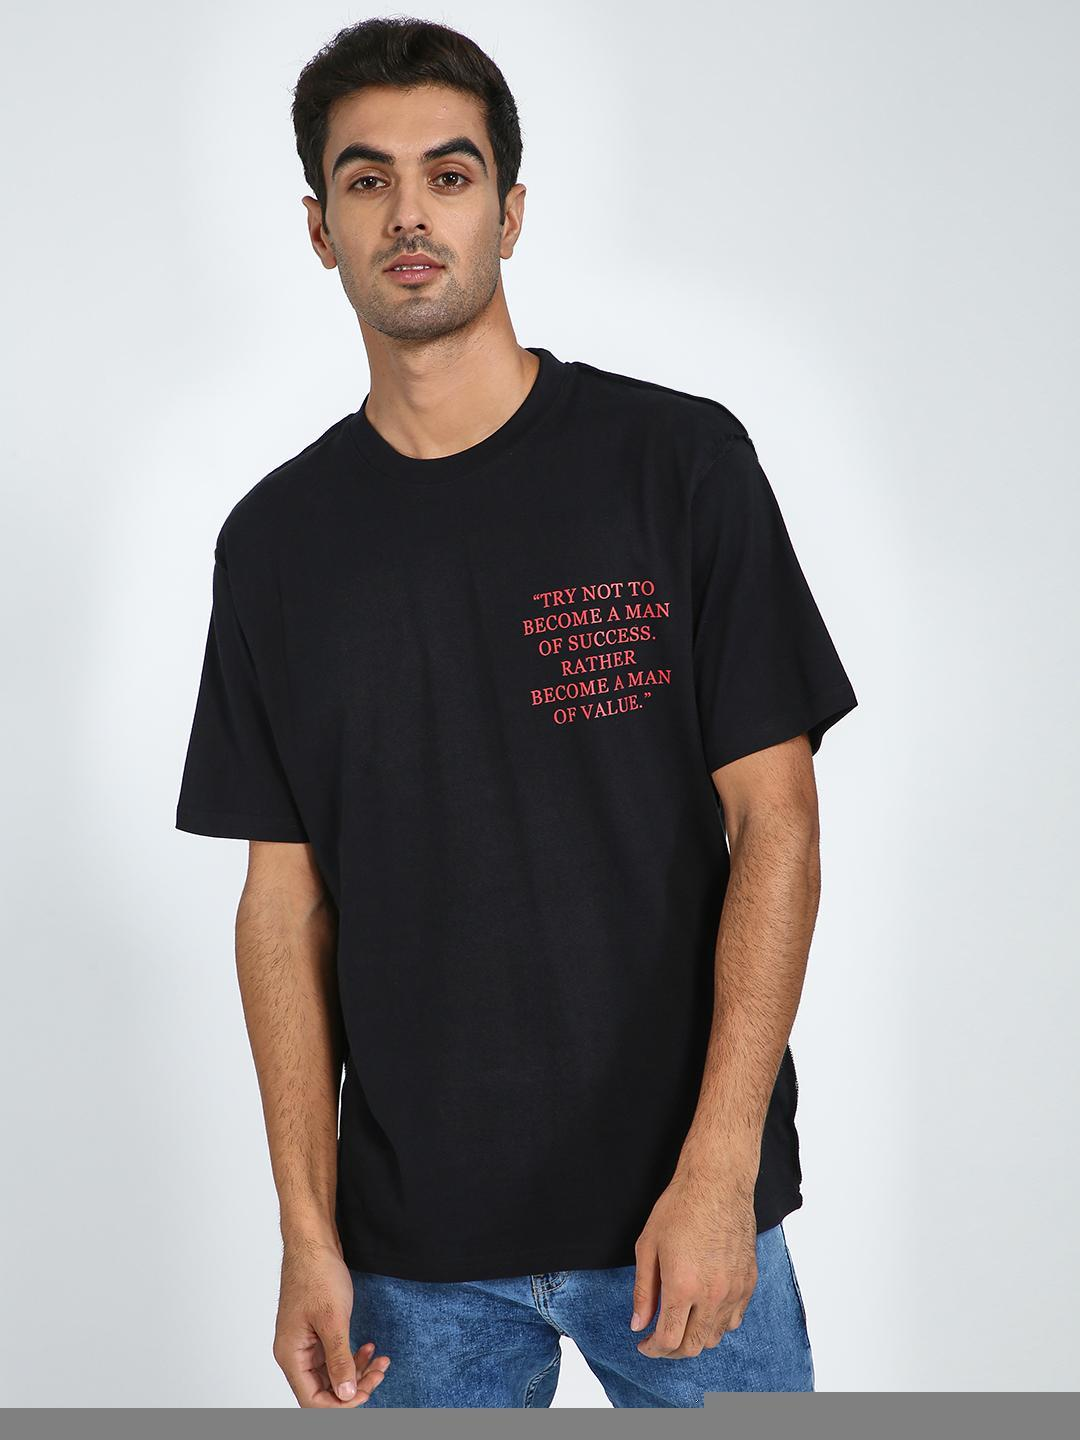 Blue Saint Black Slogan Placement Print Oversized T-Shirt 1